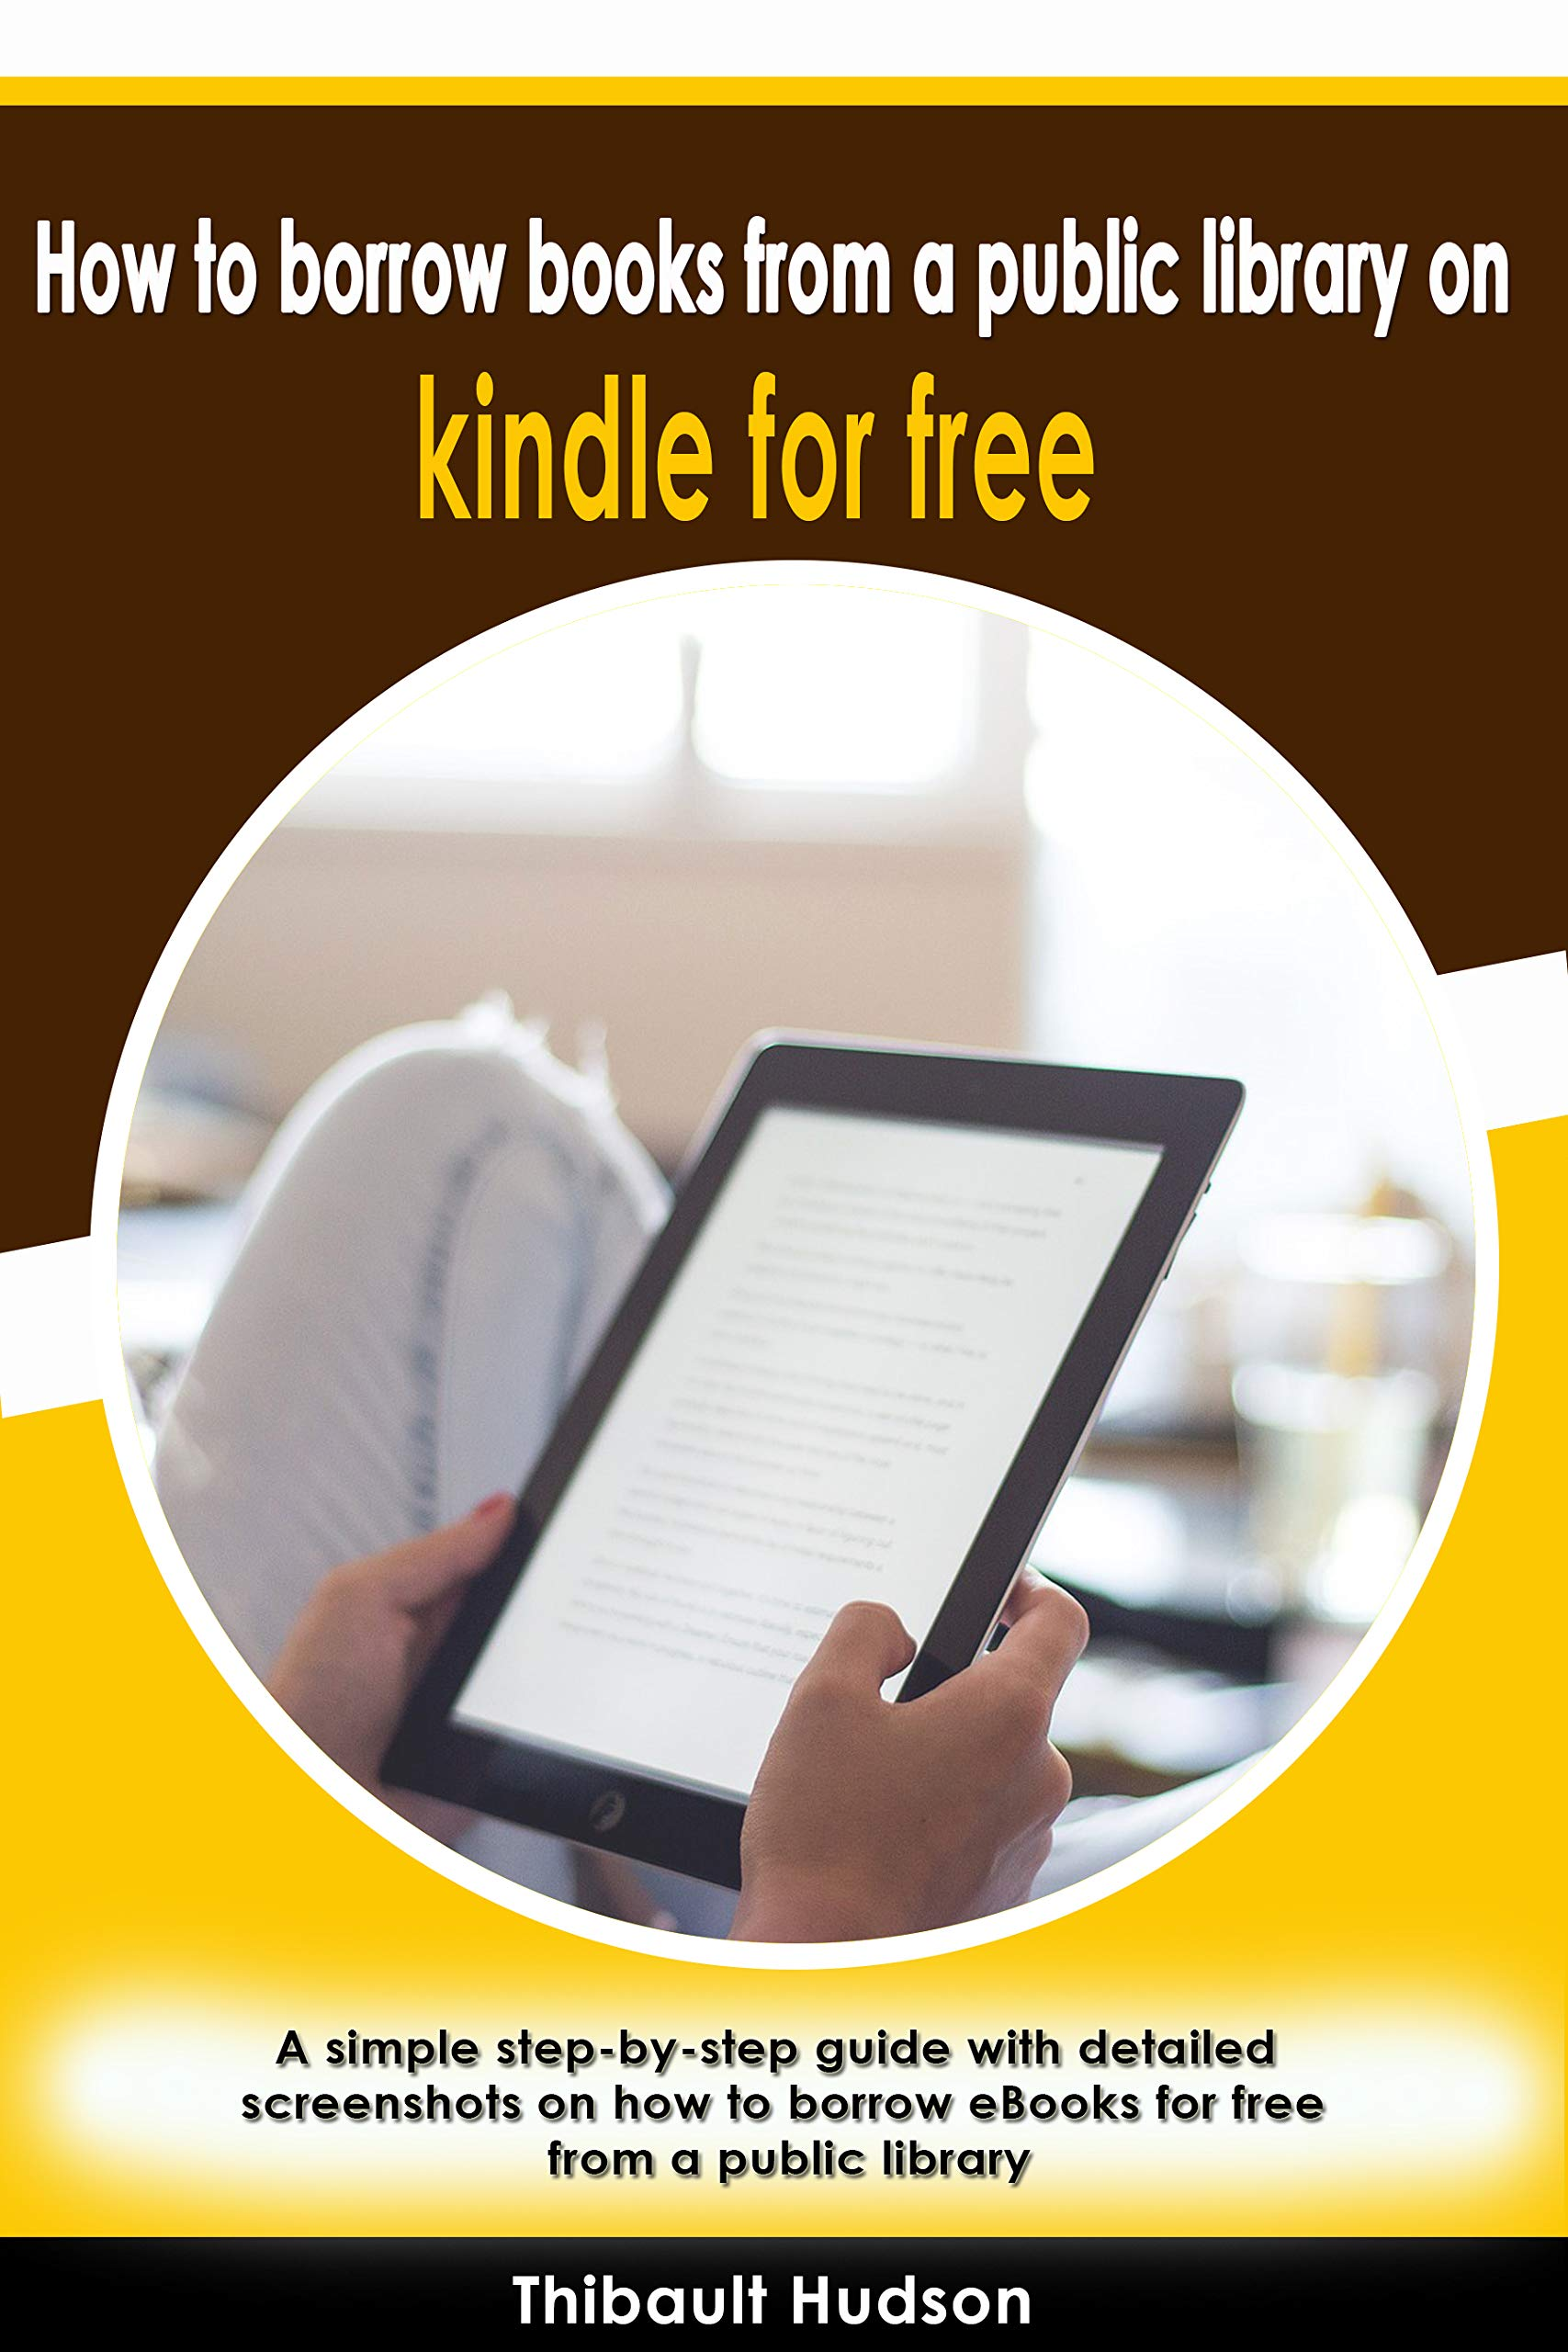 How to borrow books from a public library on kindle for free: A simple step-by-step guide with detailed screenshots on how to borrow eBooks for free from a public library